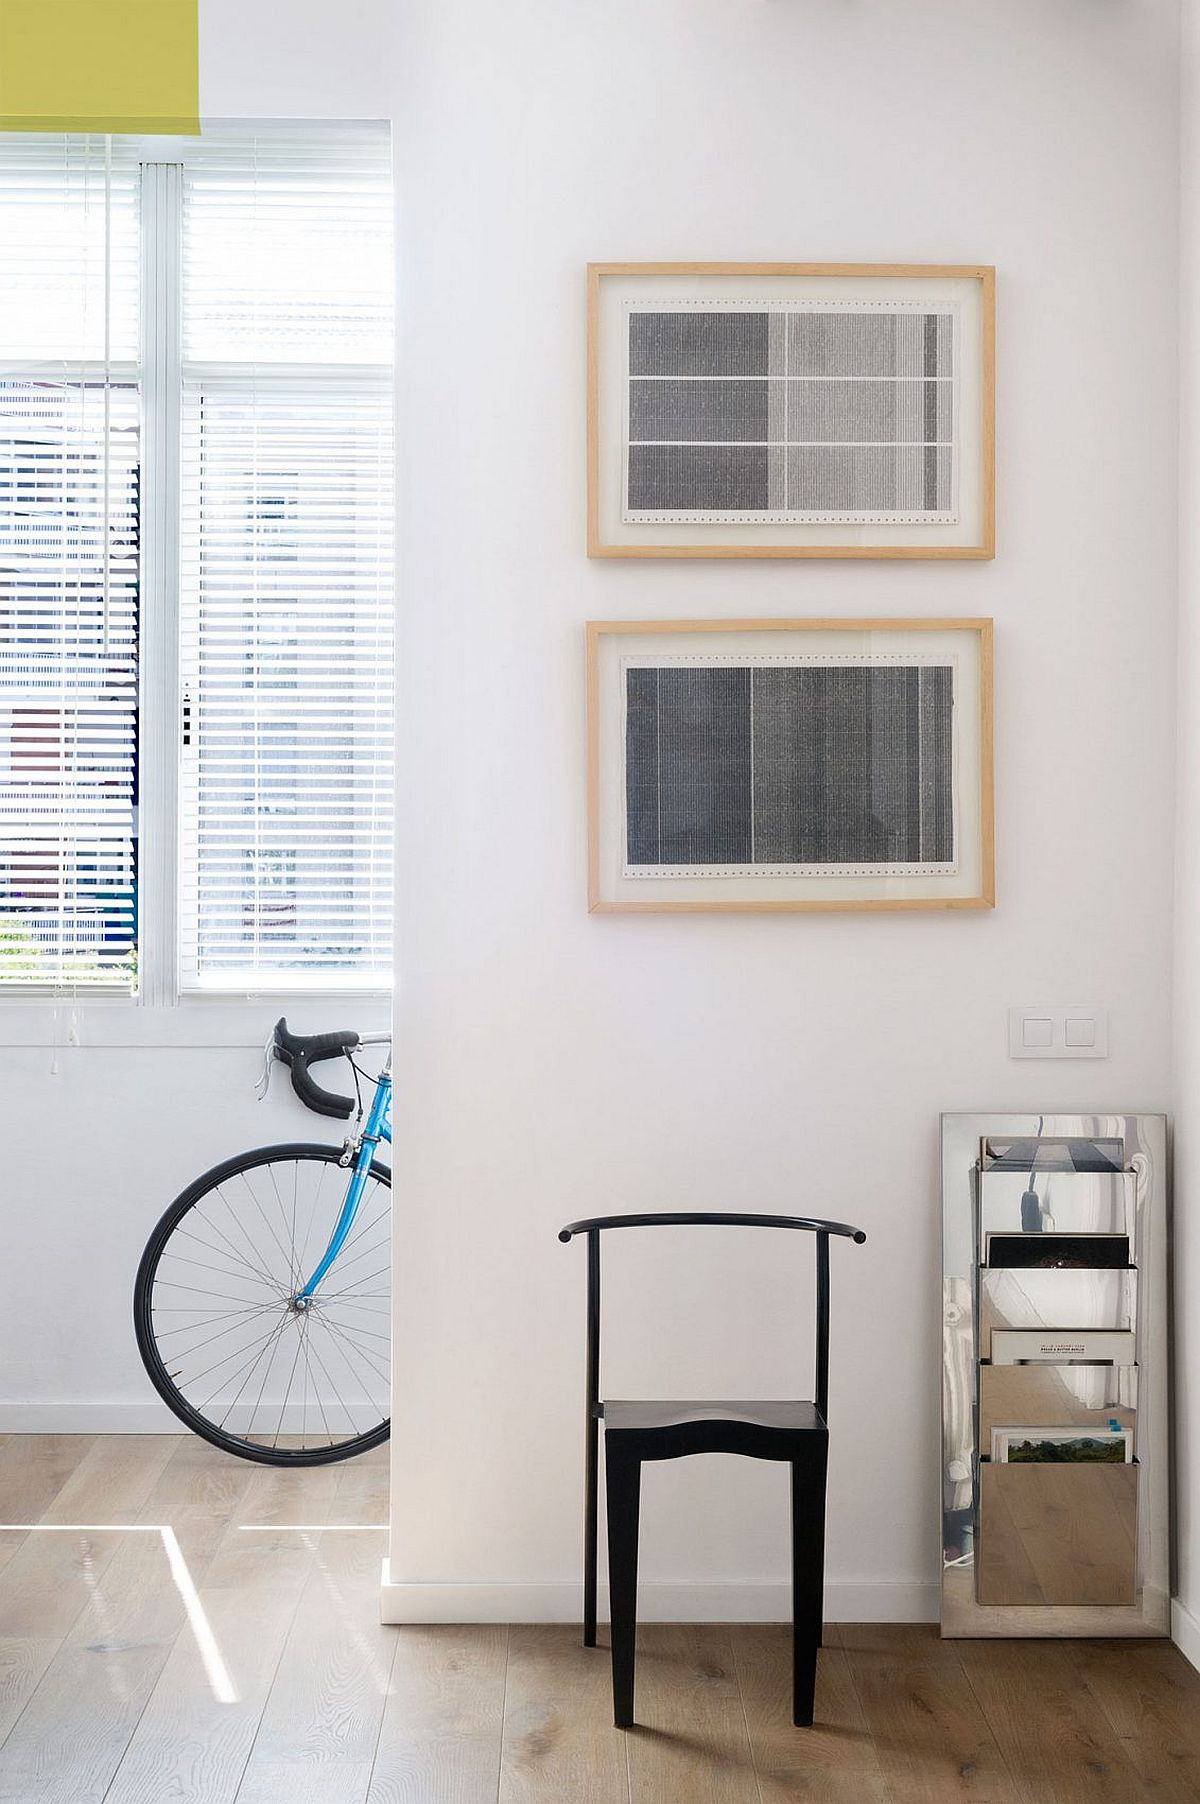 Original framed prints add distinct style to the living space